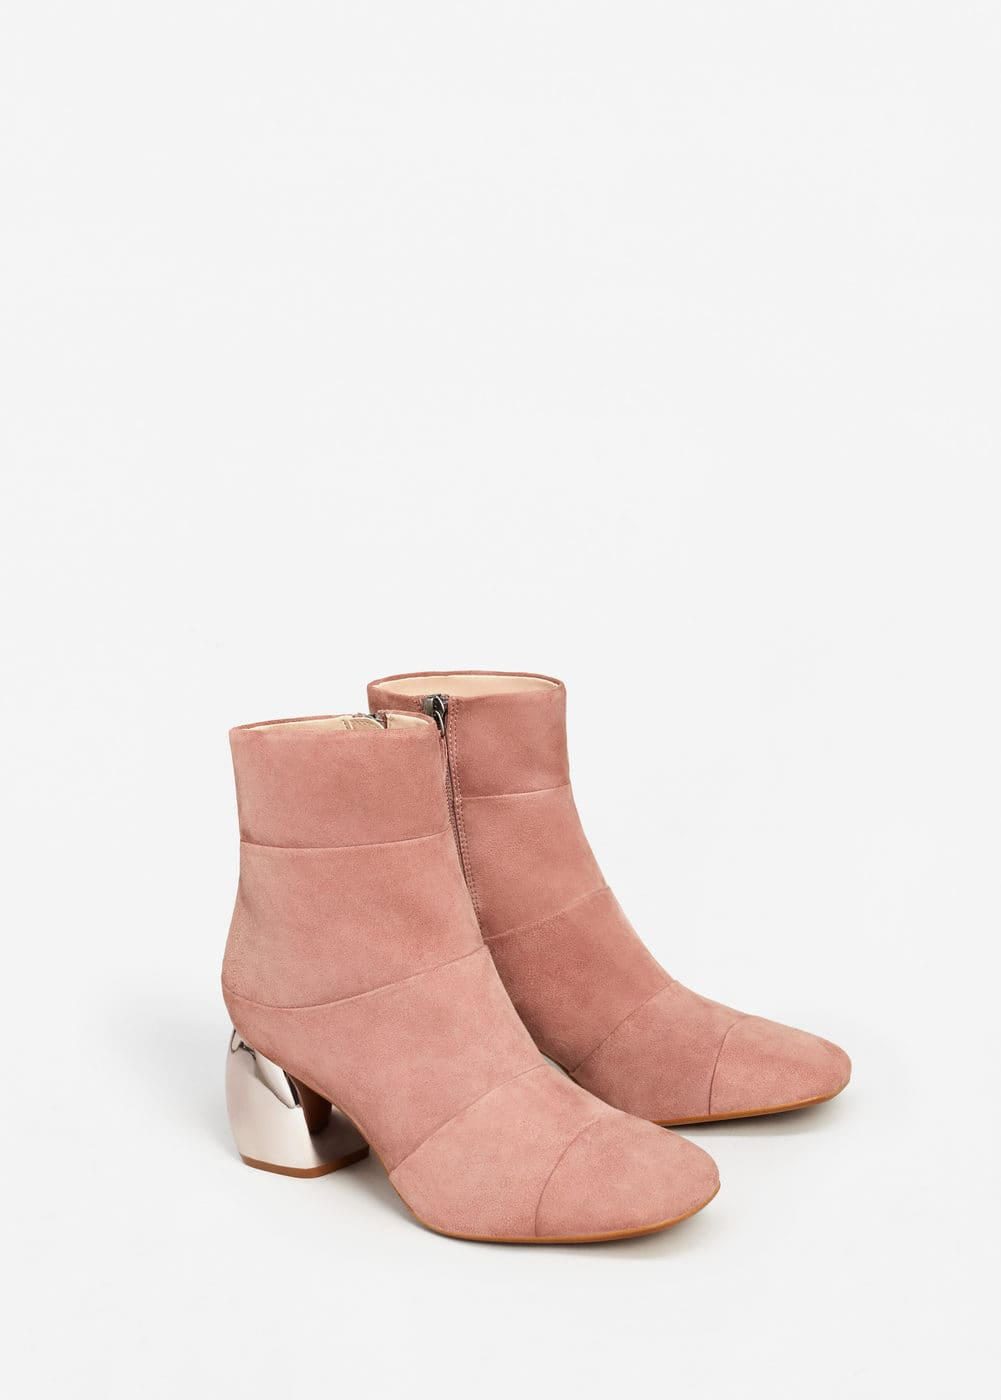 Bottines daim talon miroir | MANGO